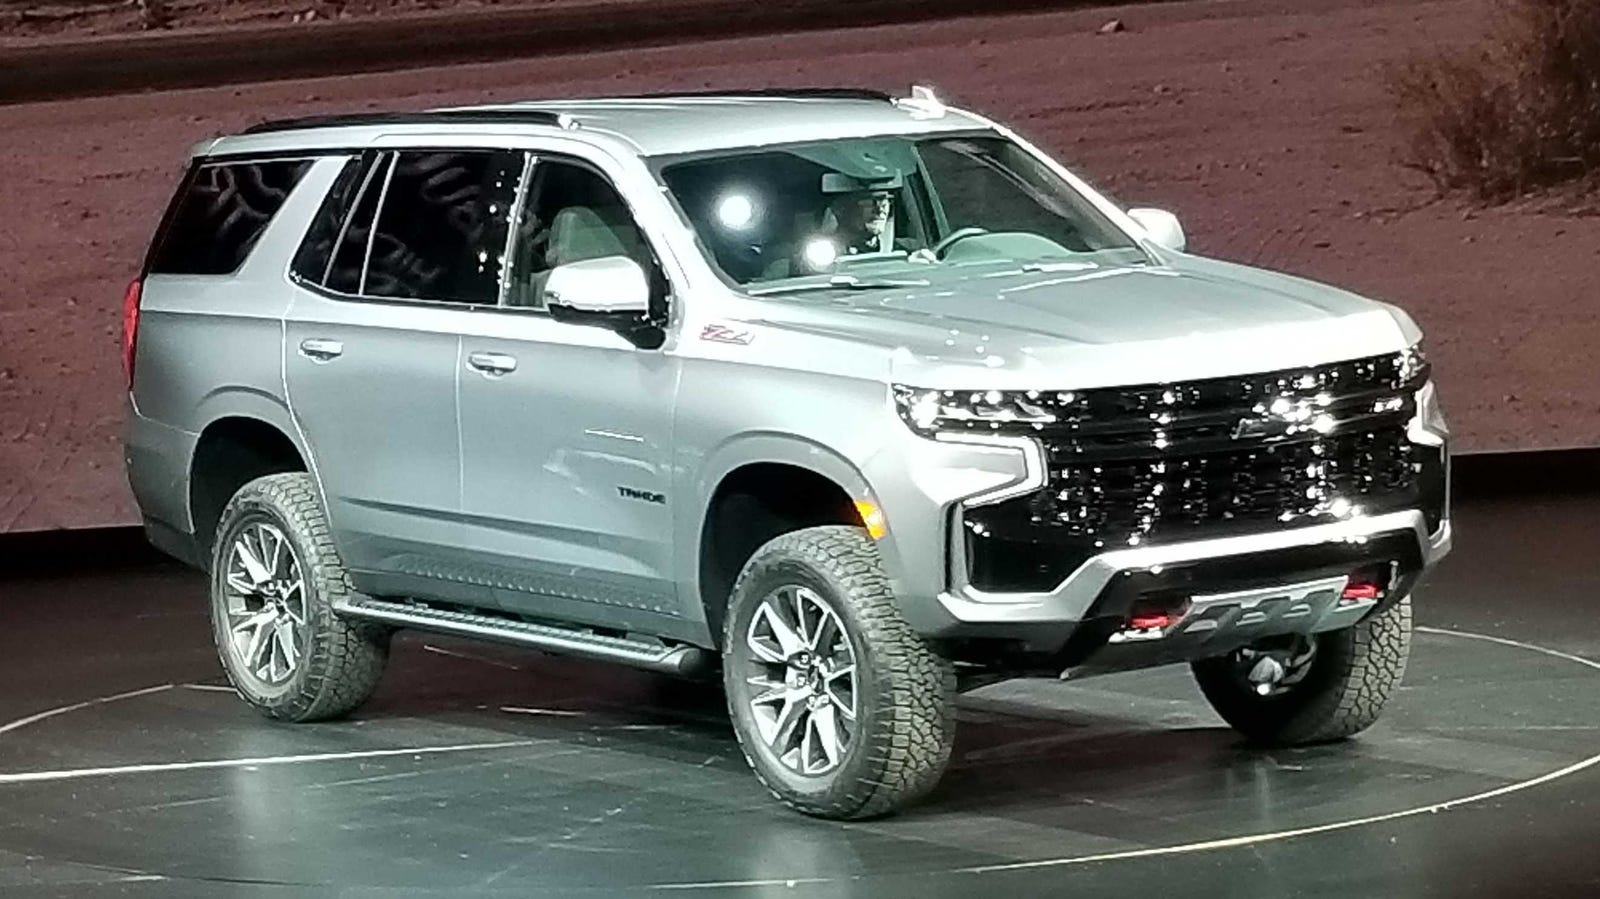 Chevy's biggest SUVs redesigned with more space, tech.